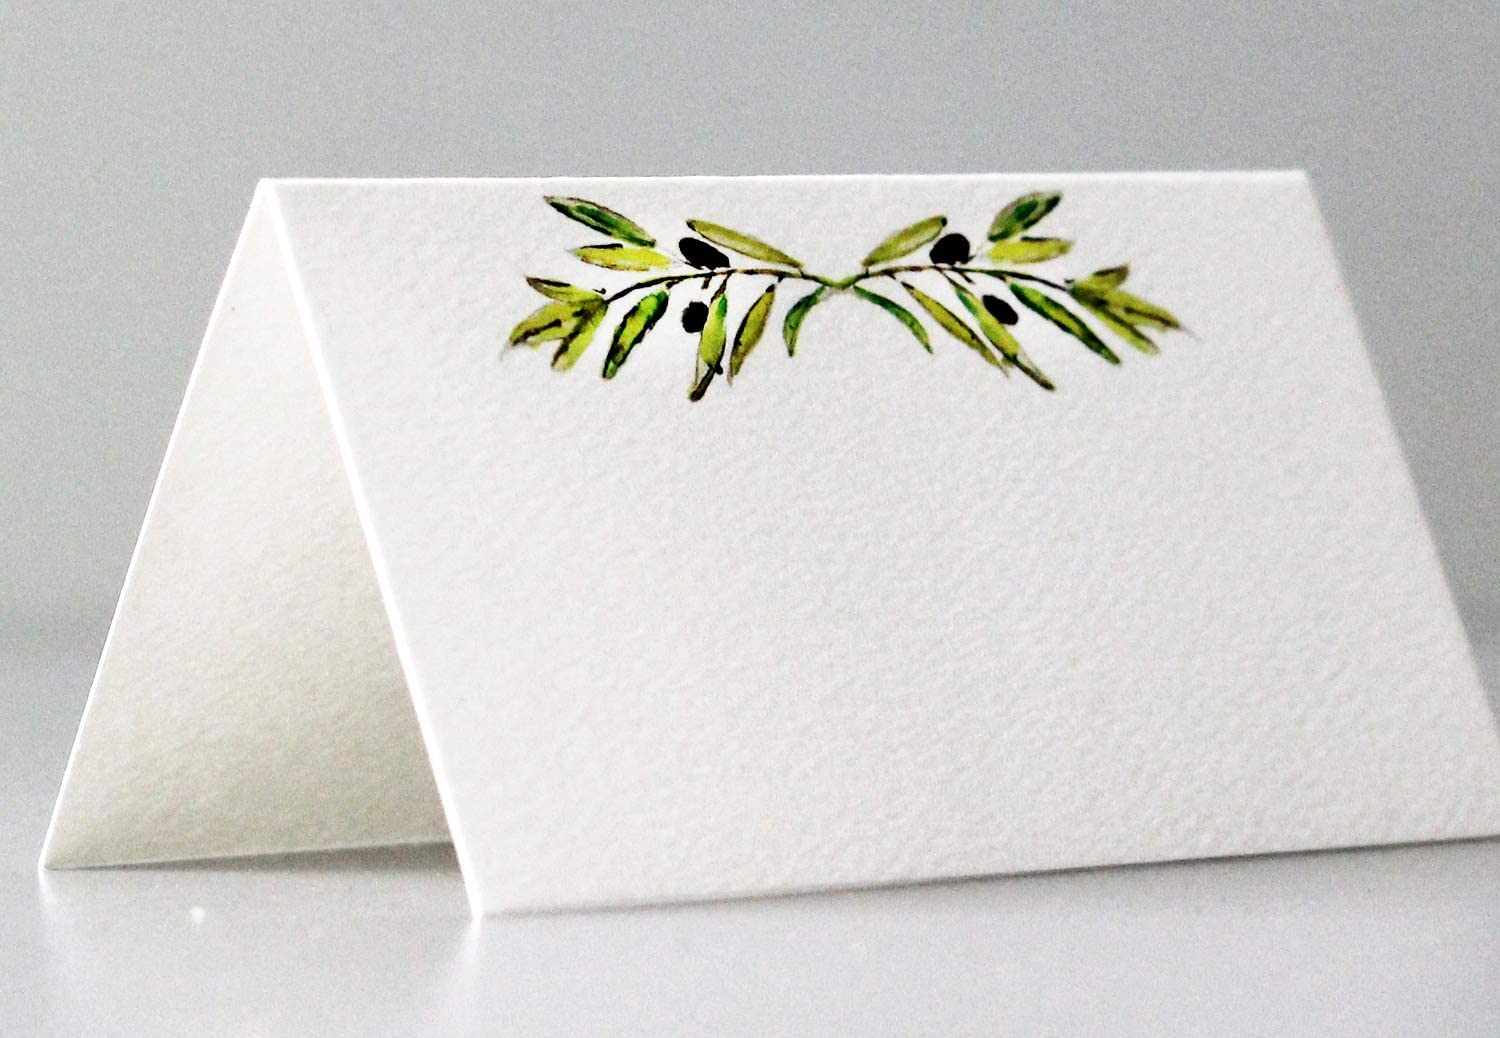 Nancy Nikko Place Cards with Green Leafy Olive Branch for Weddings, Showers, and Dinner Parties. Table Tent Style, Scored for Easy Folding. Available in Pkgs of 12/25 / 50 (50)